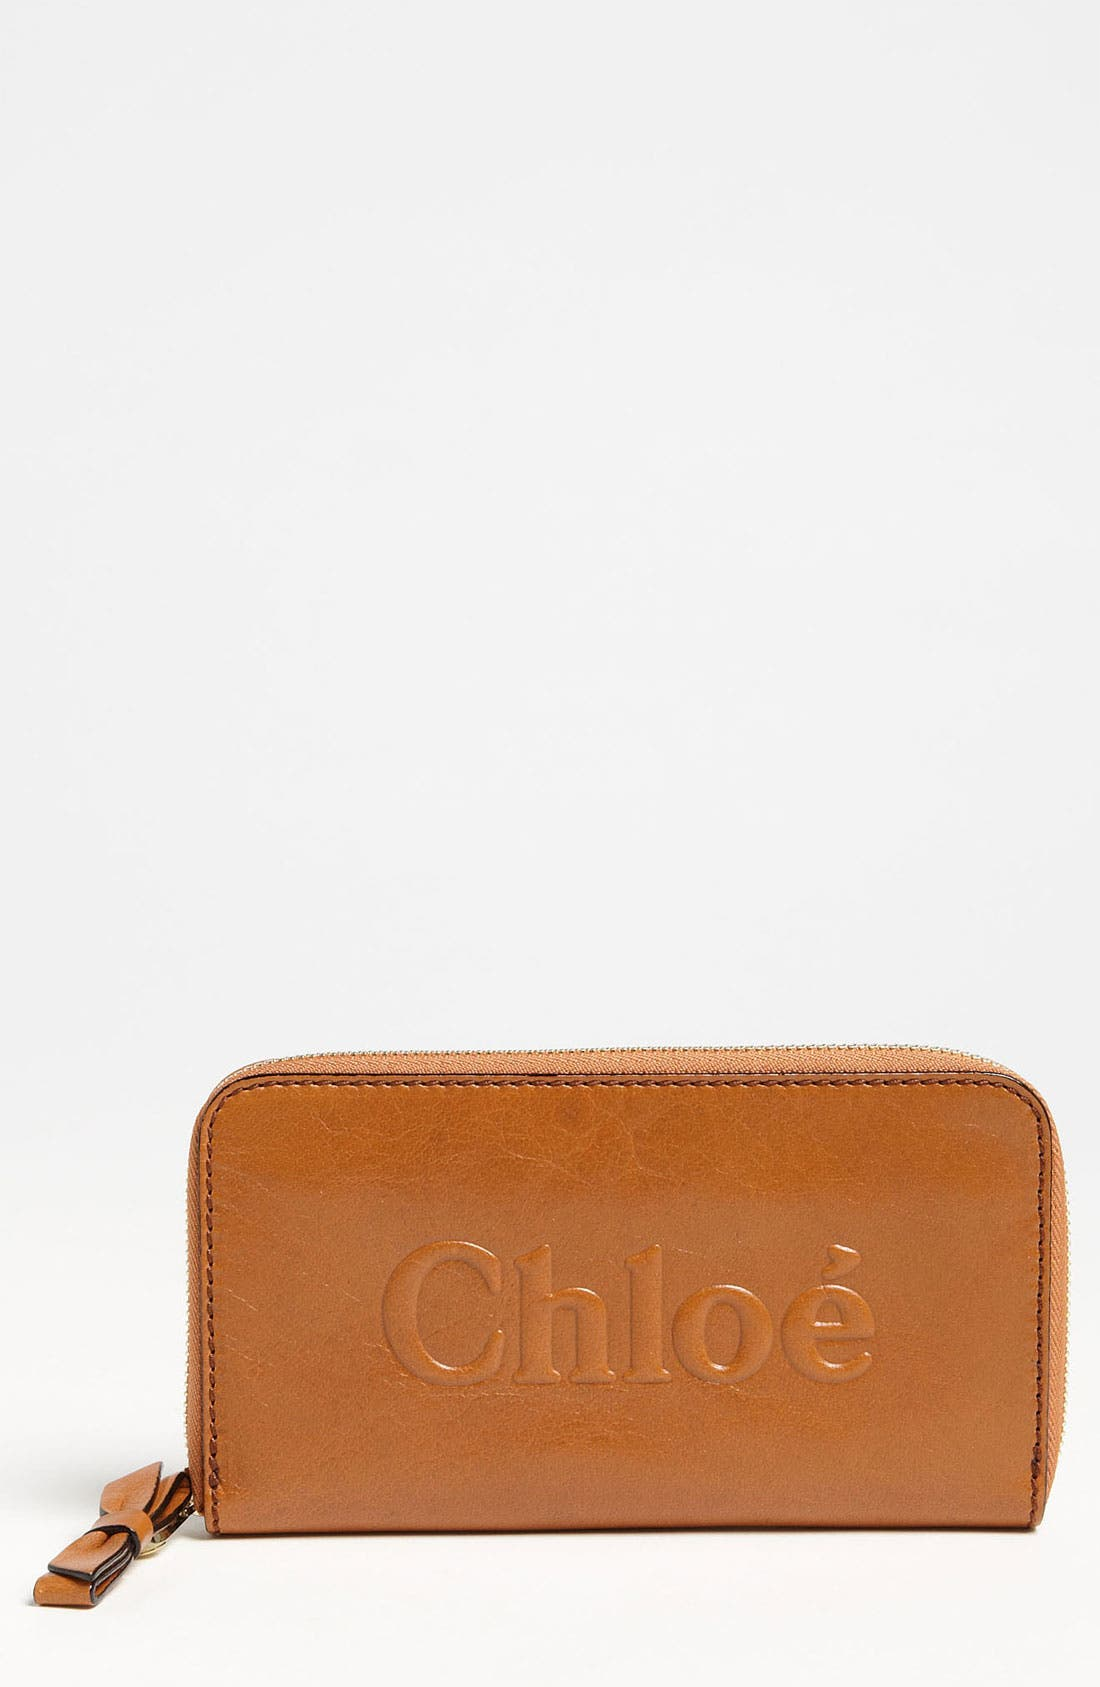 Main Image - Chloé 'Shadow - Long' Zip Around Leather Wallet